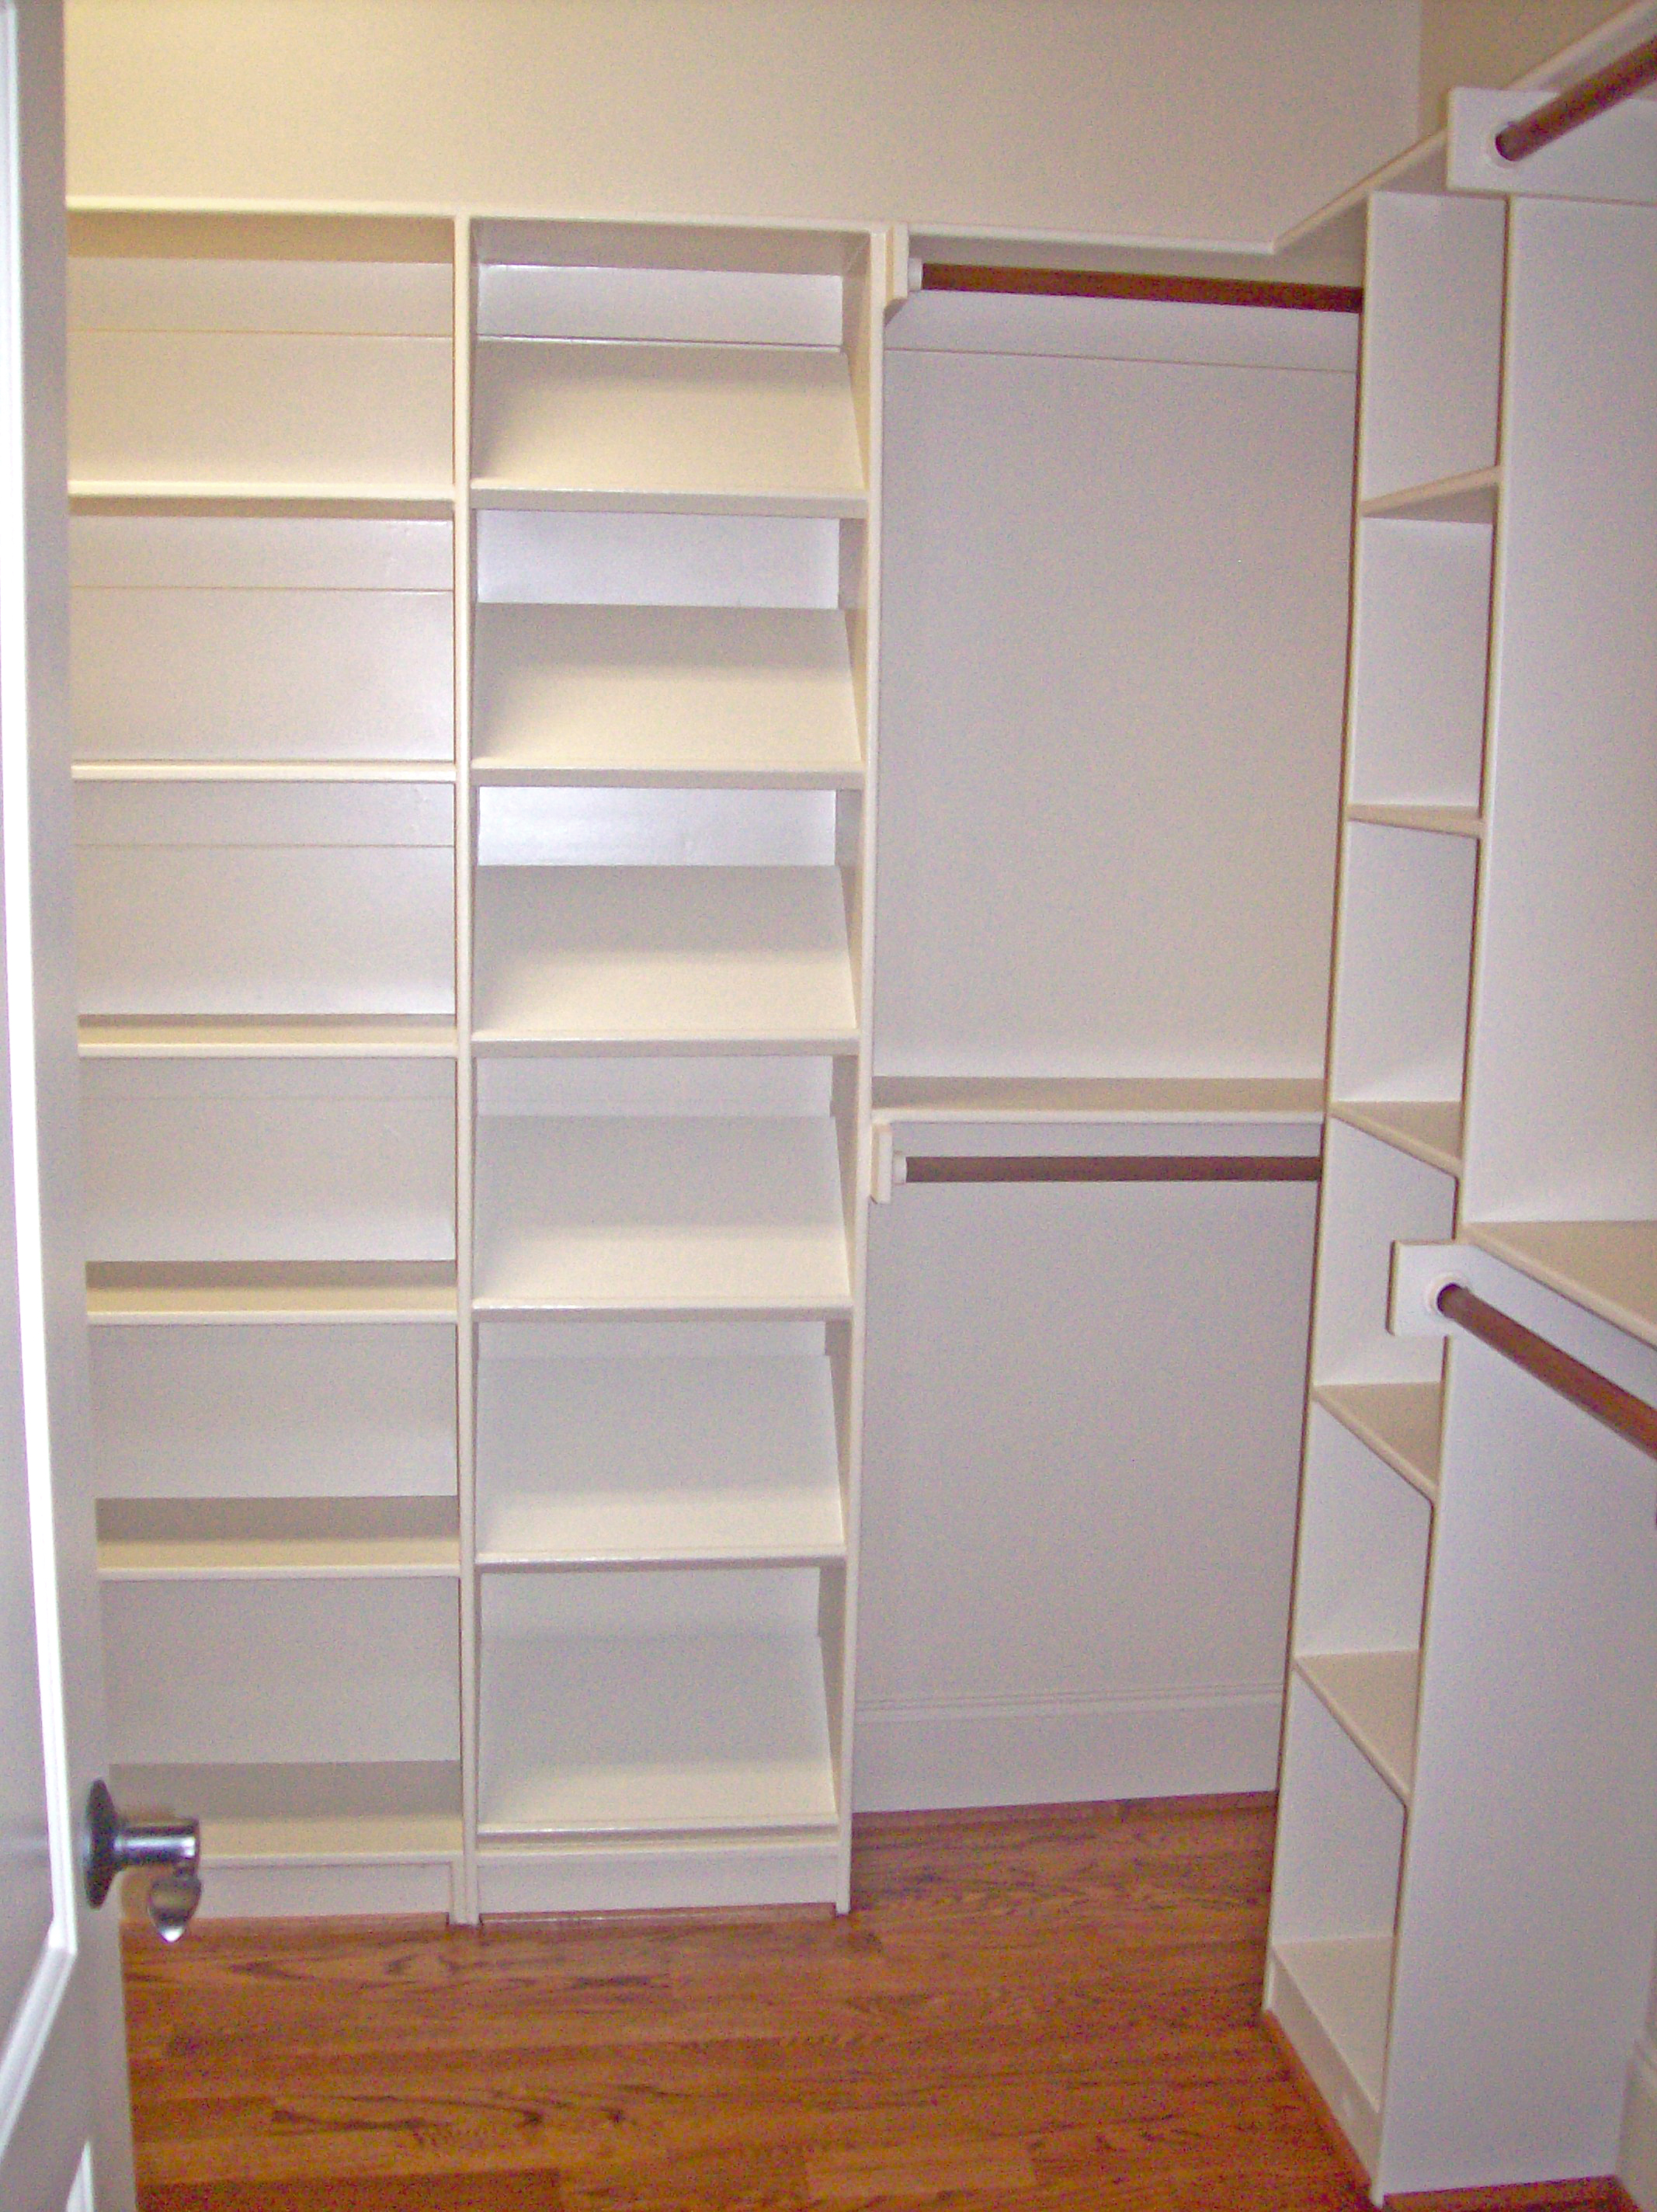 Reach-In Closet with Cubbies & Double Hang